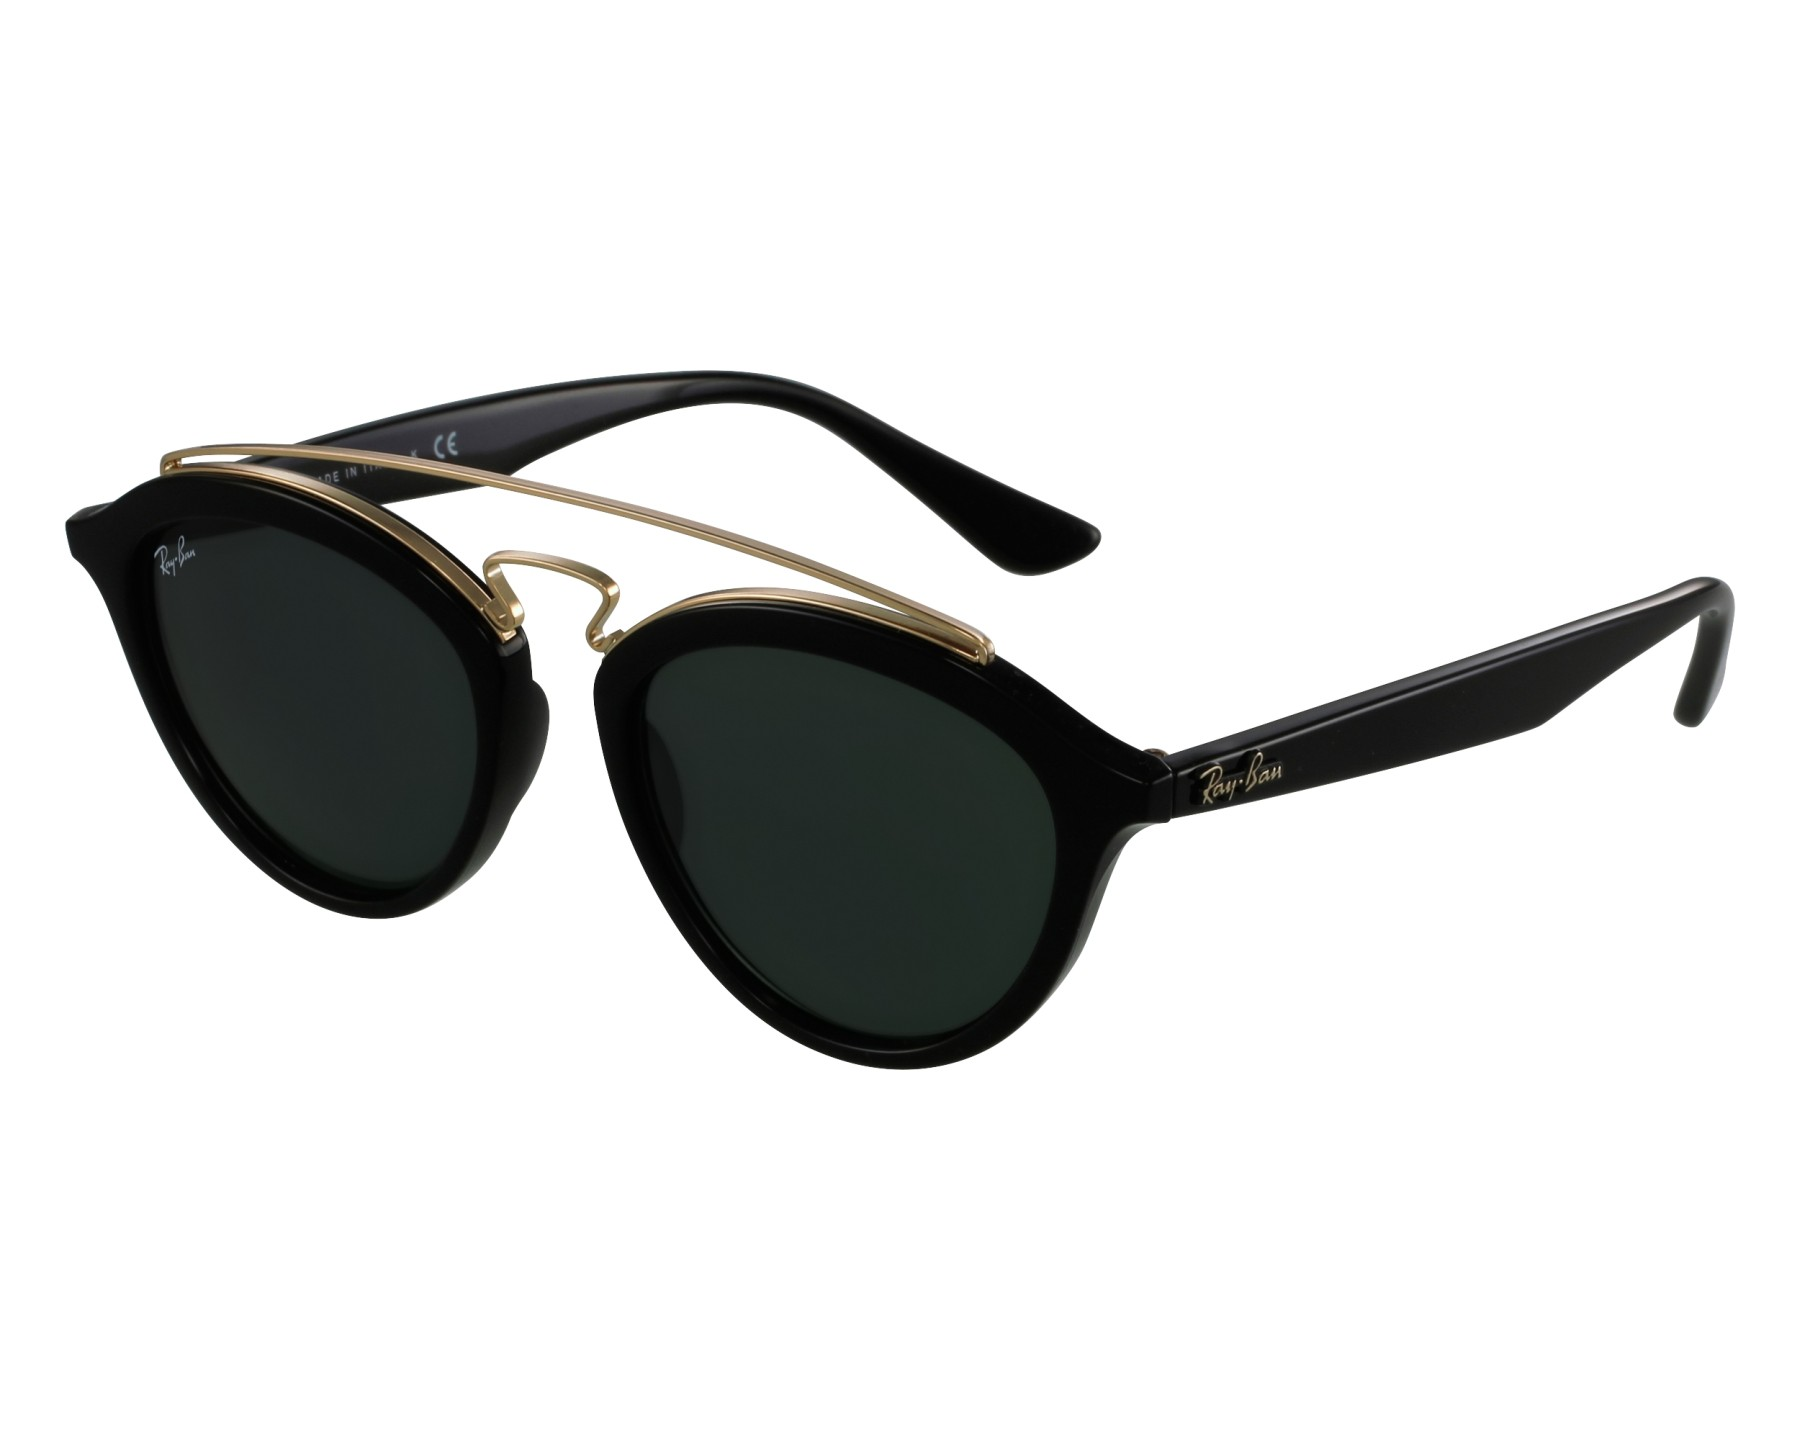 c1115c7824 Sunglasses Ray-Ban RB-4257 601 71 53-19 Black Gold front